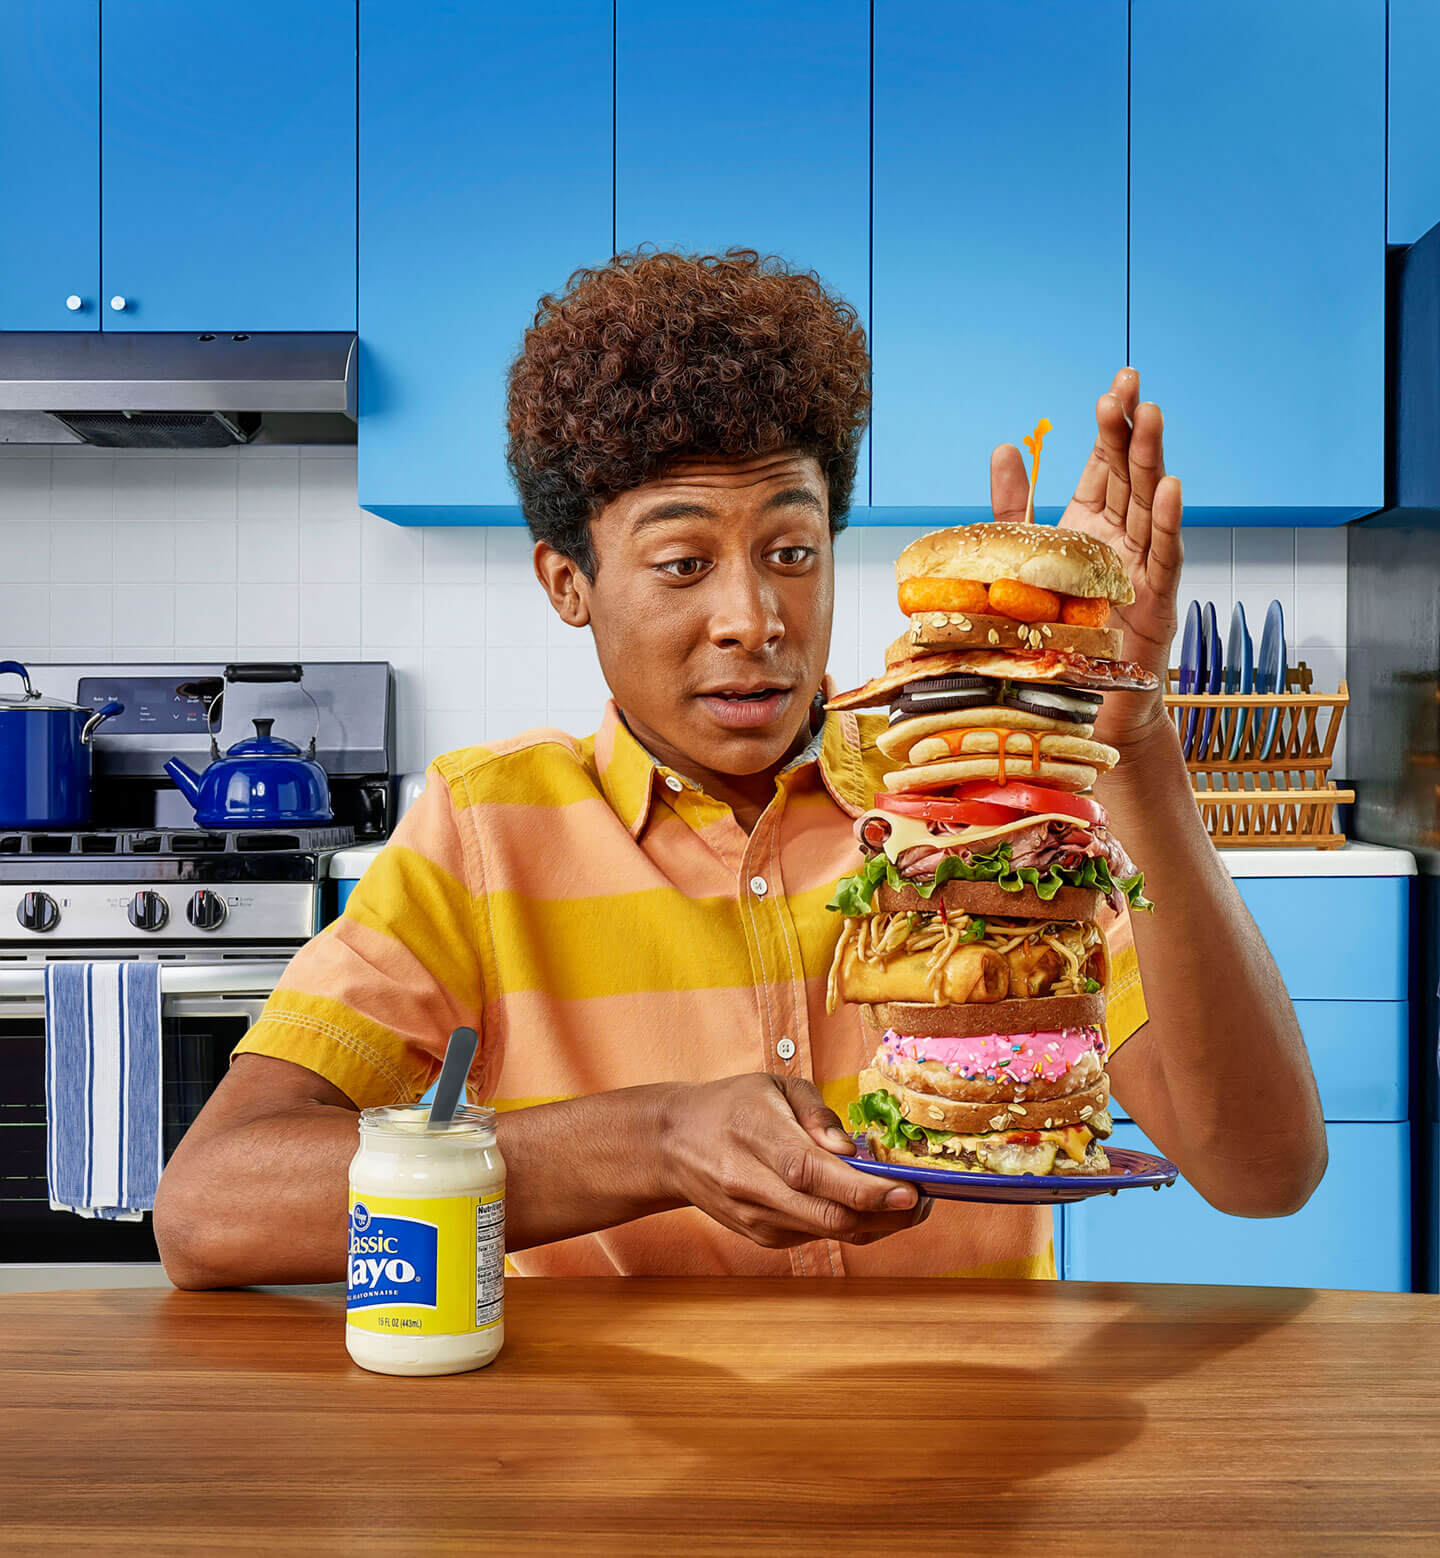 Man in a kitchen about to eat an incredibly large sandwich.